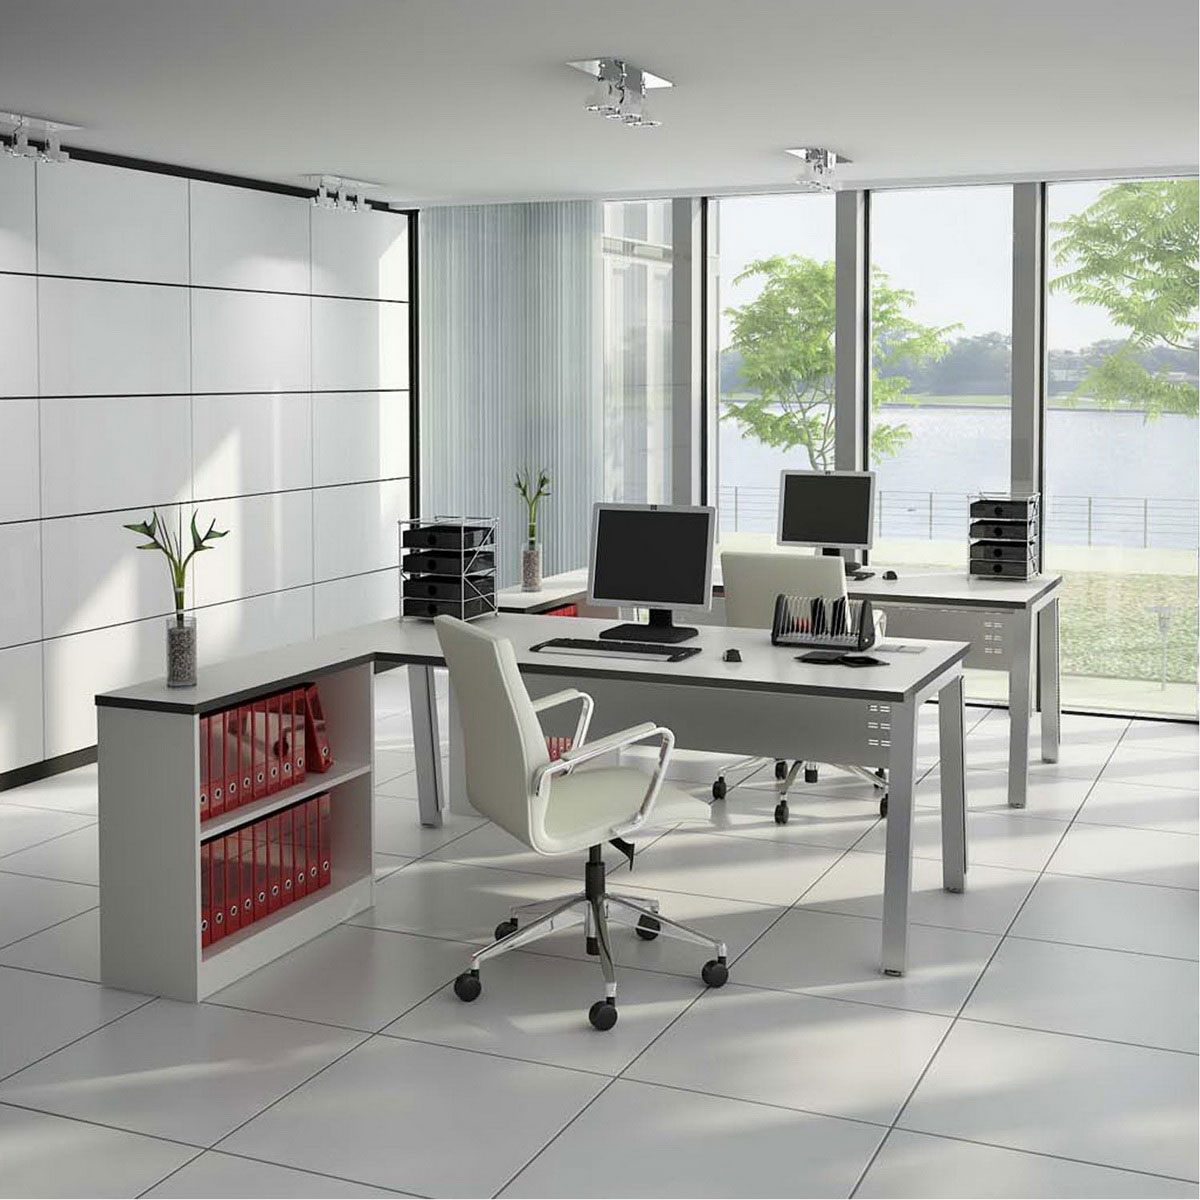 Office interior design dreams house furniture Design home office